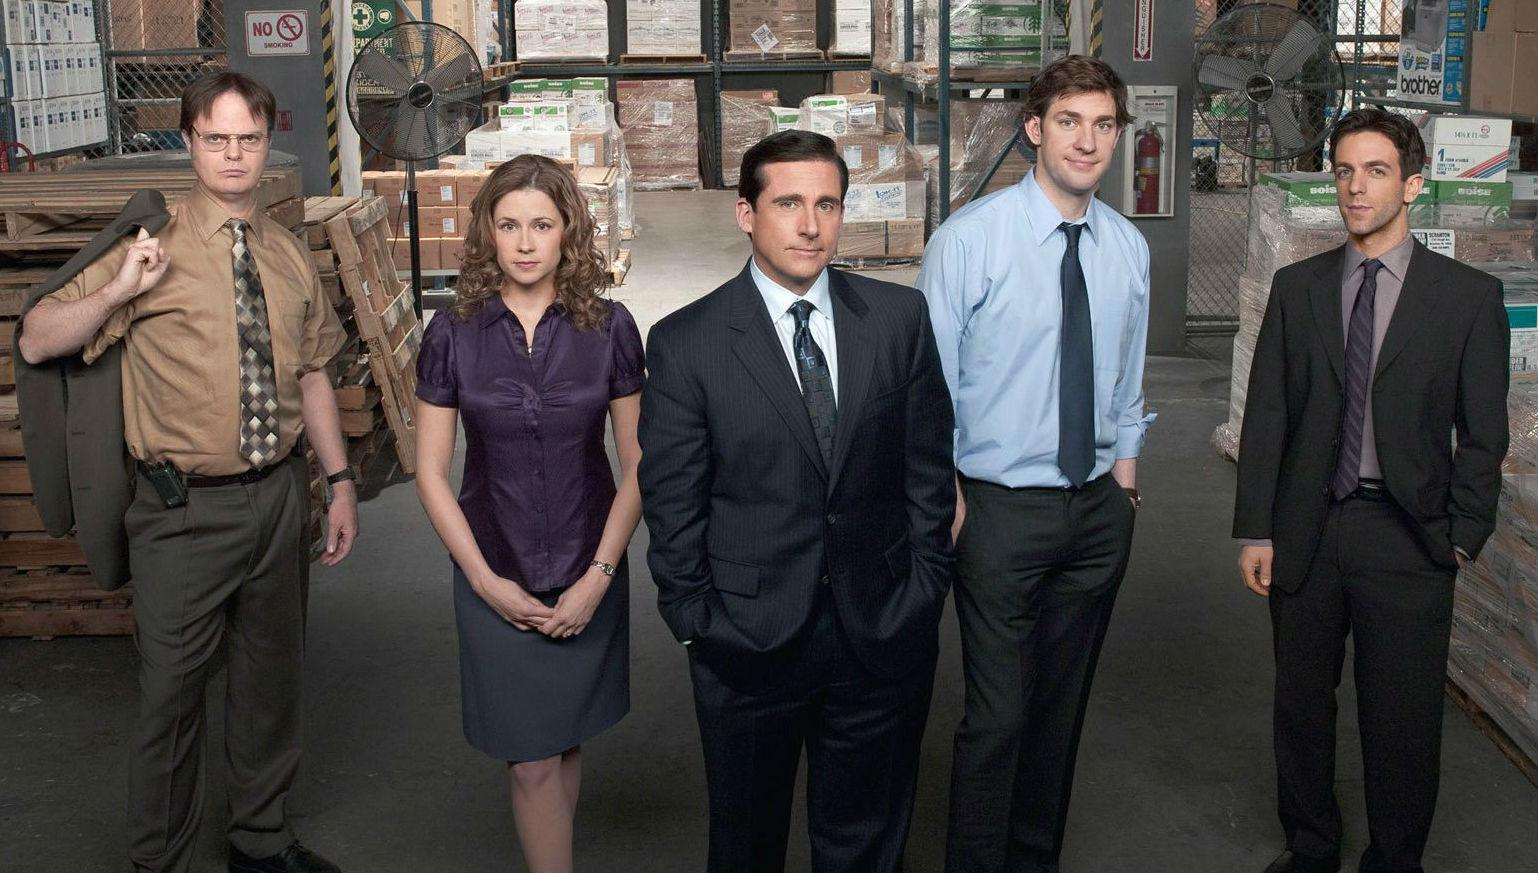 'The Office' Revival in the Works, Steve Carell Will Not Return